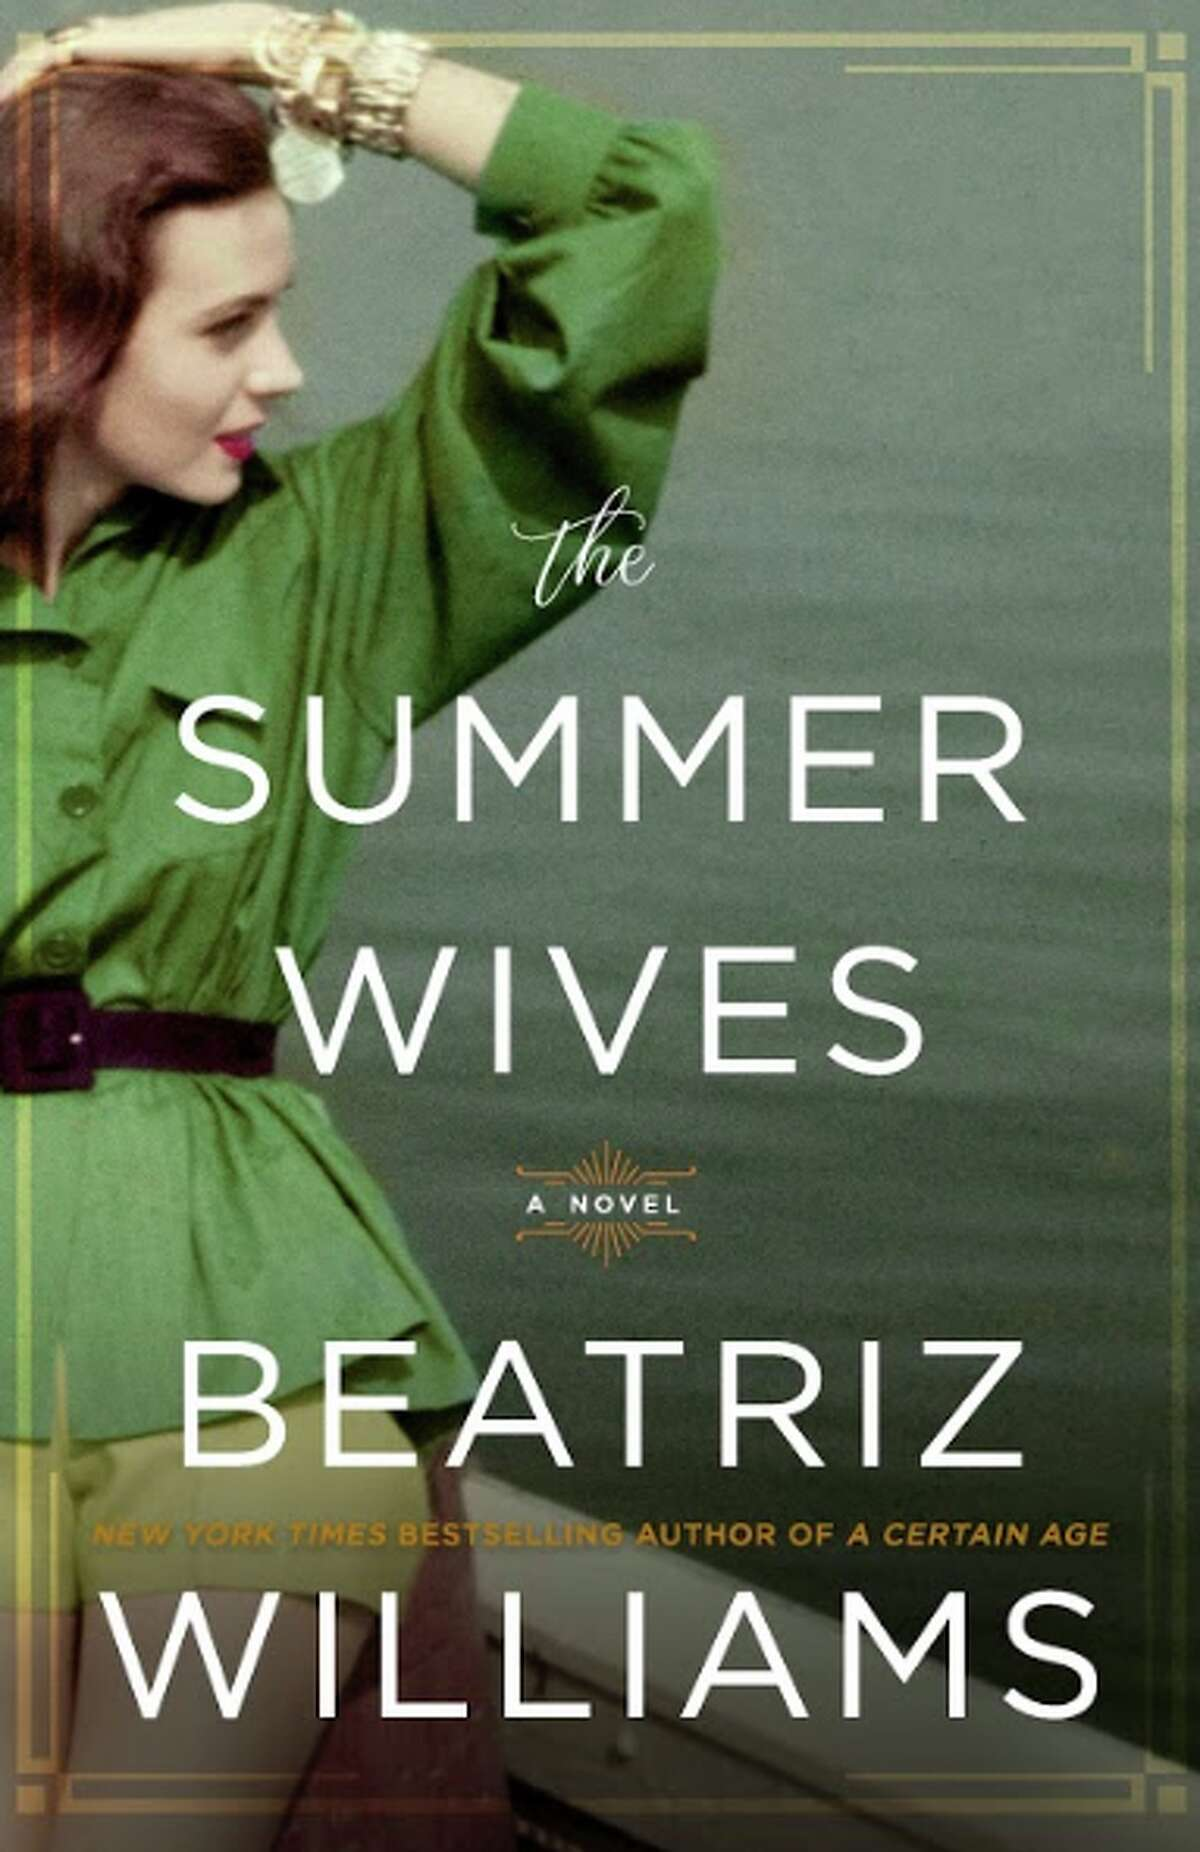 New York Times bestselling author Beatriz Williams will visit the Darien Library on Thursday, July 12.